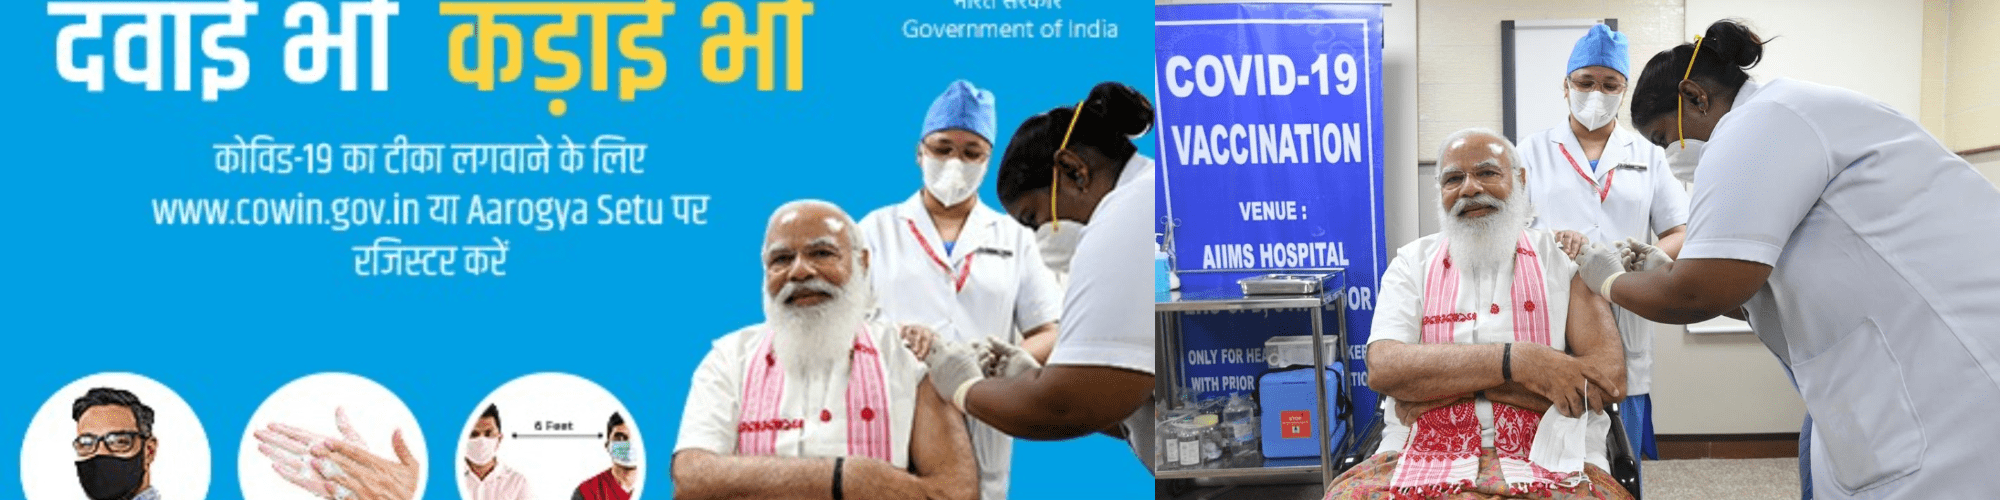 Shri Narendra Modi, Hon'ble Prime Minister getting vaccinated against COVID-19 (1st dose on 1st March, 2021)